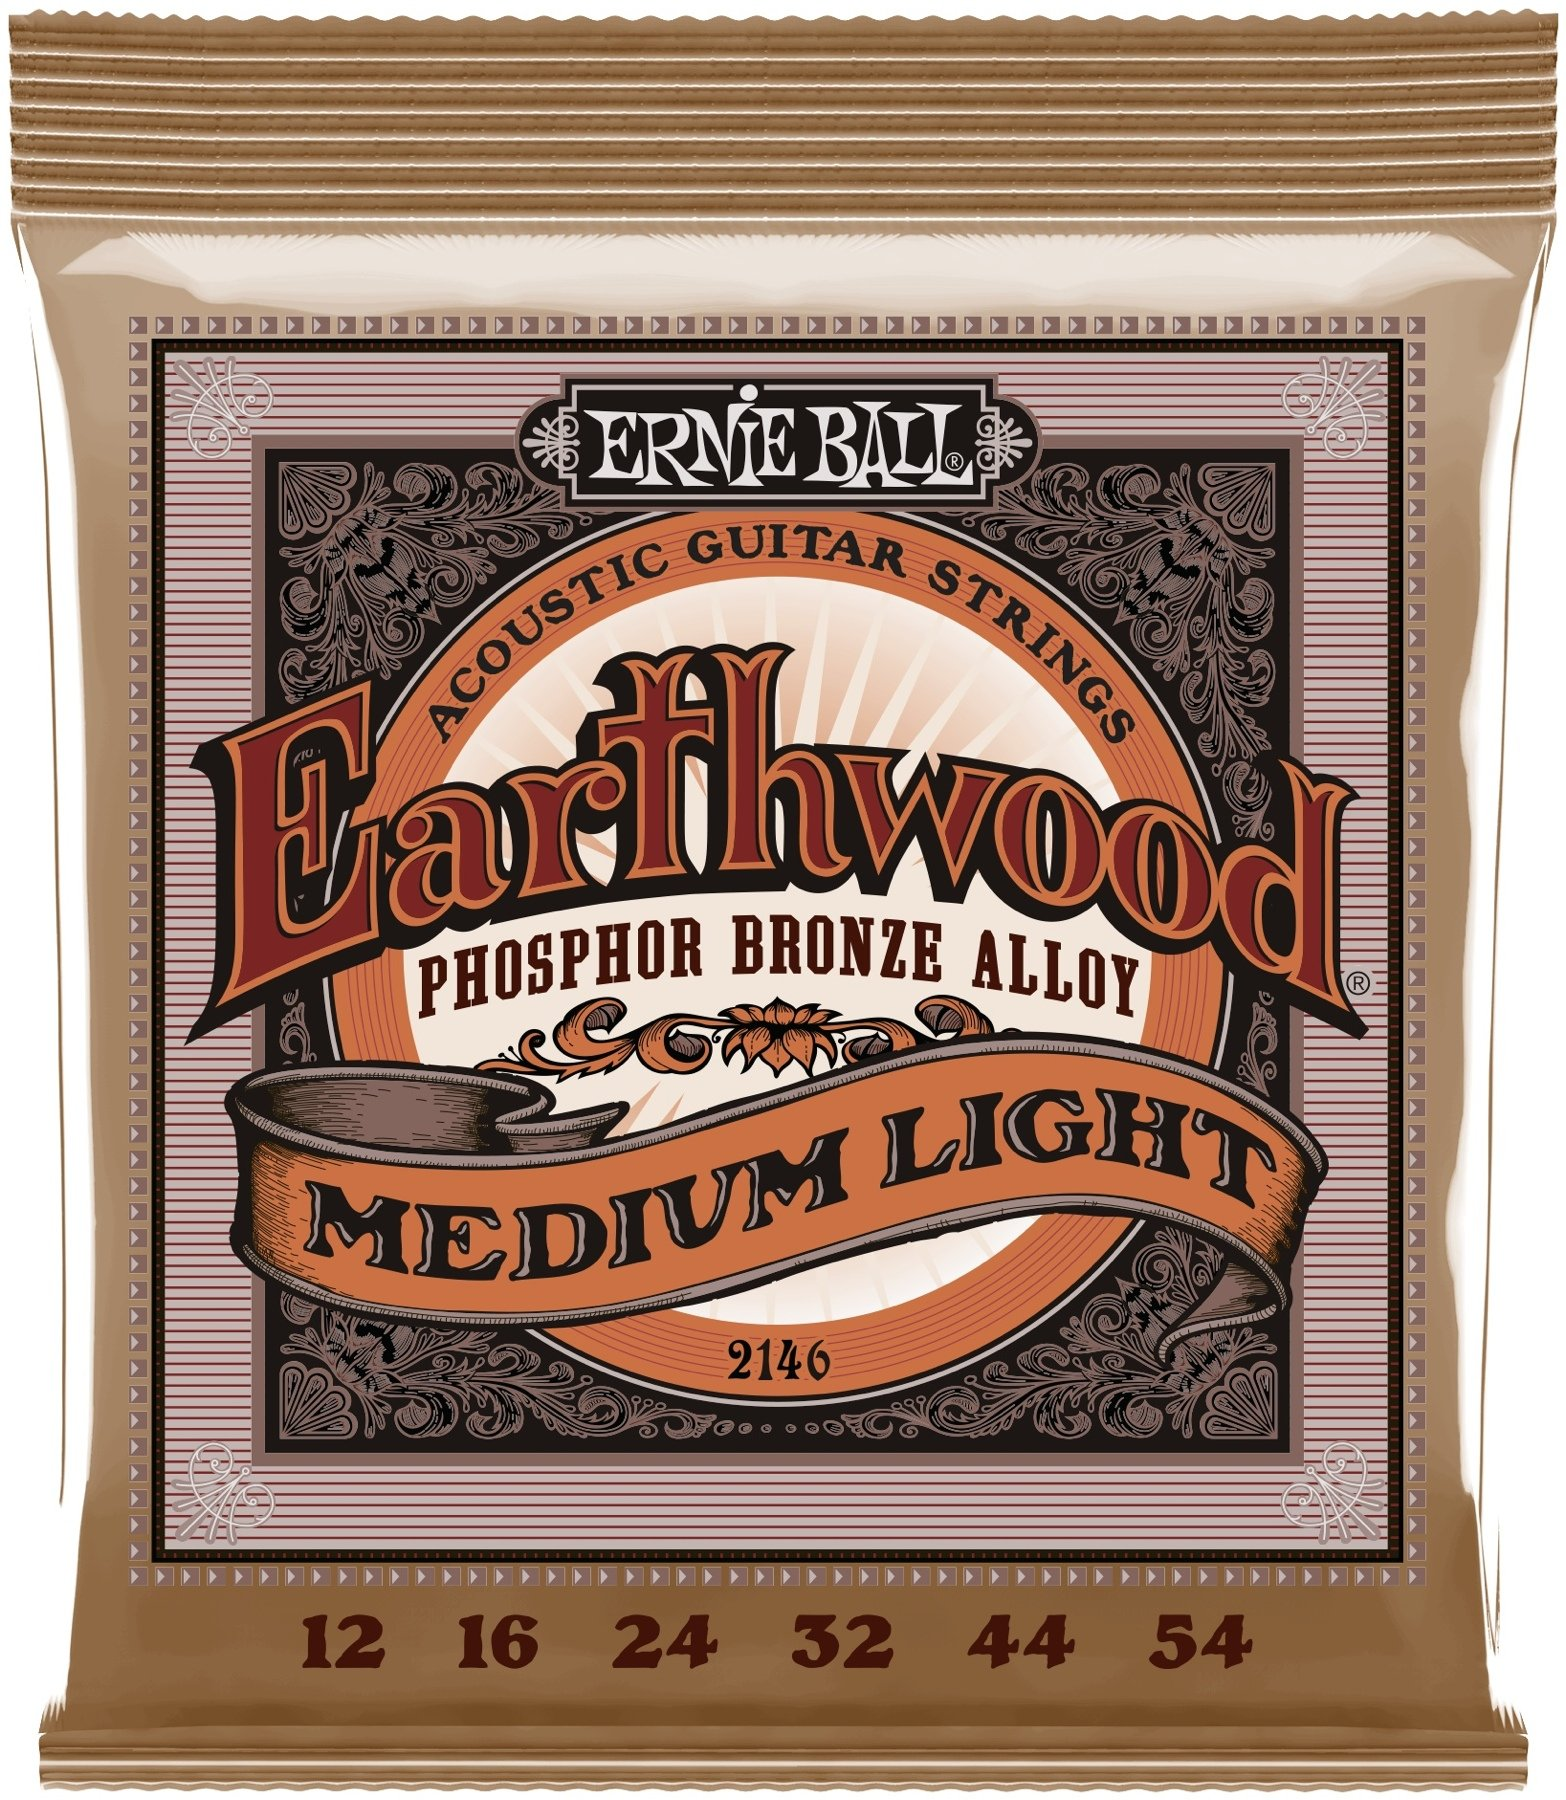 .012-.054 Medium Light Ernie Ball EB 2146 Earthwood Phosp Bronze